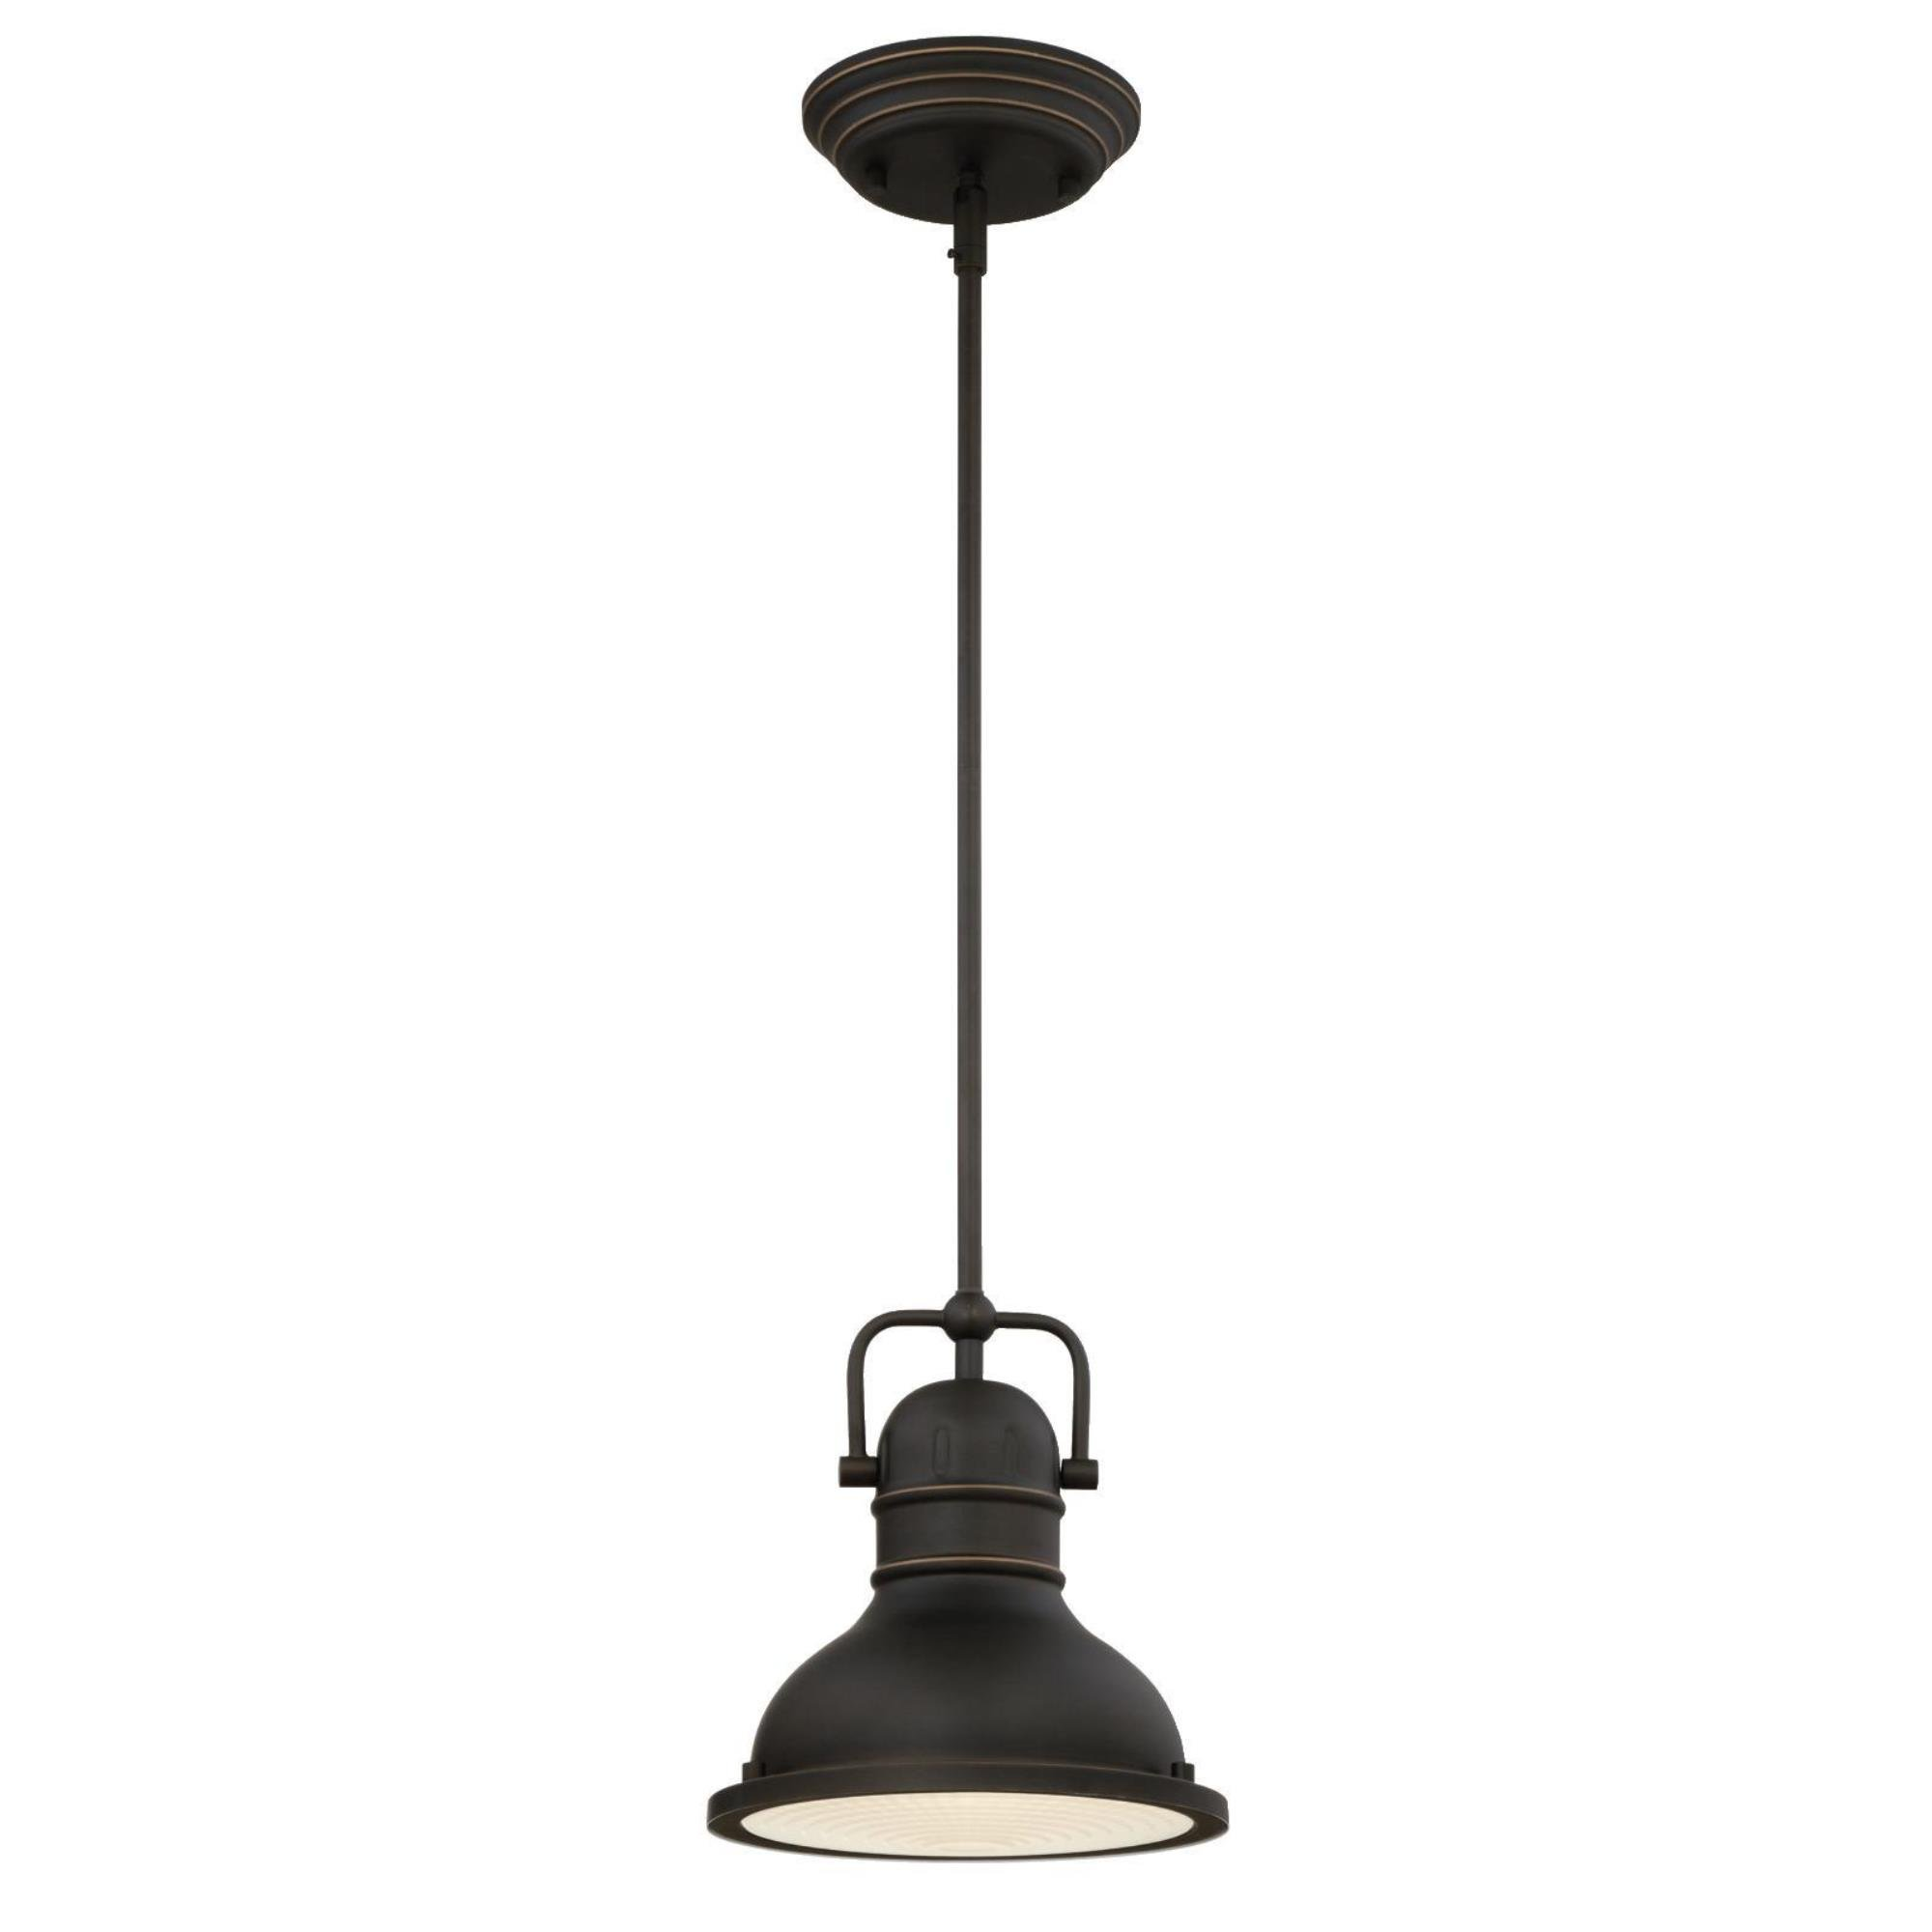 Westinghouse 63082B Boswell One-Light LED Indoor Mini Pendant with Frosted Prismatic Lens, 8.75-Inch Oiled Rubbed Bronze with Highlights and 11W LED